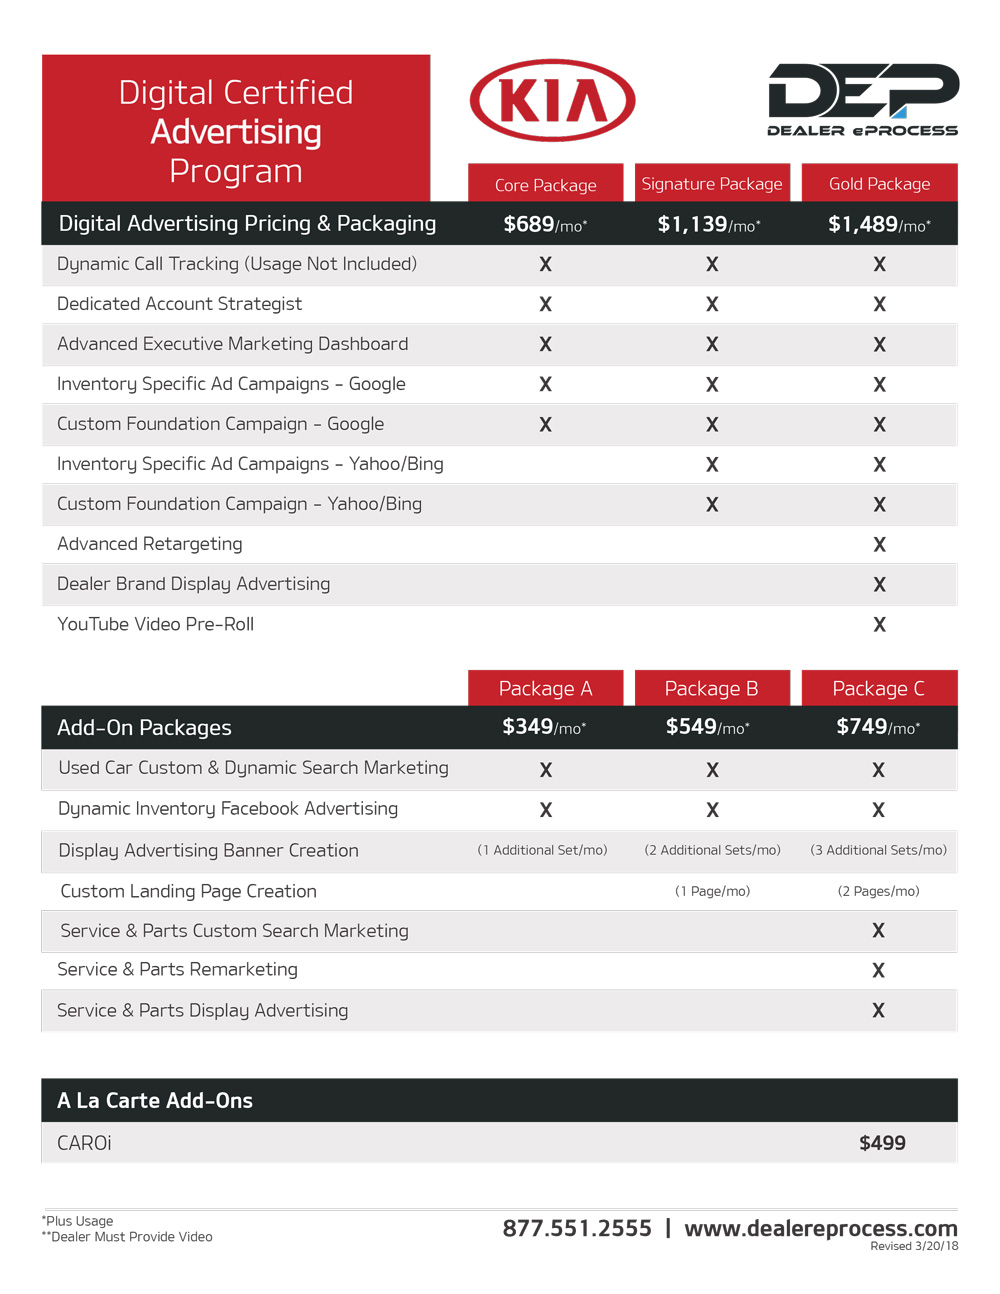 Kia digital advertising program price sheet